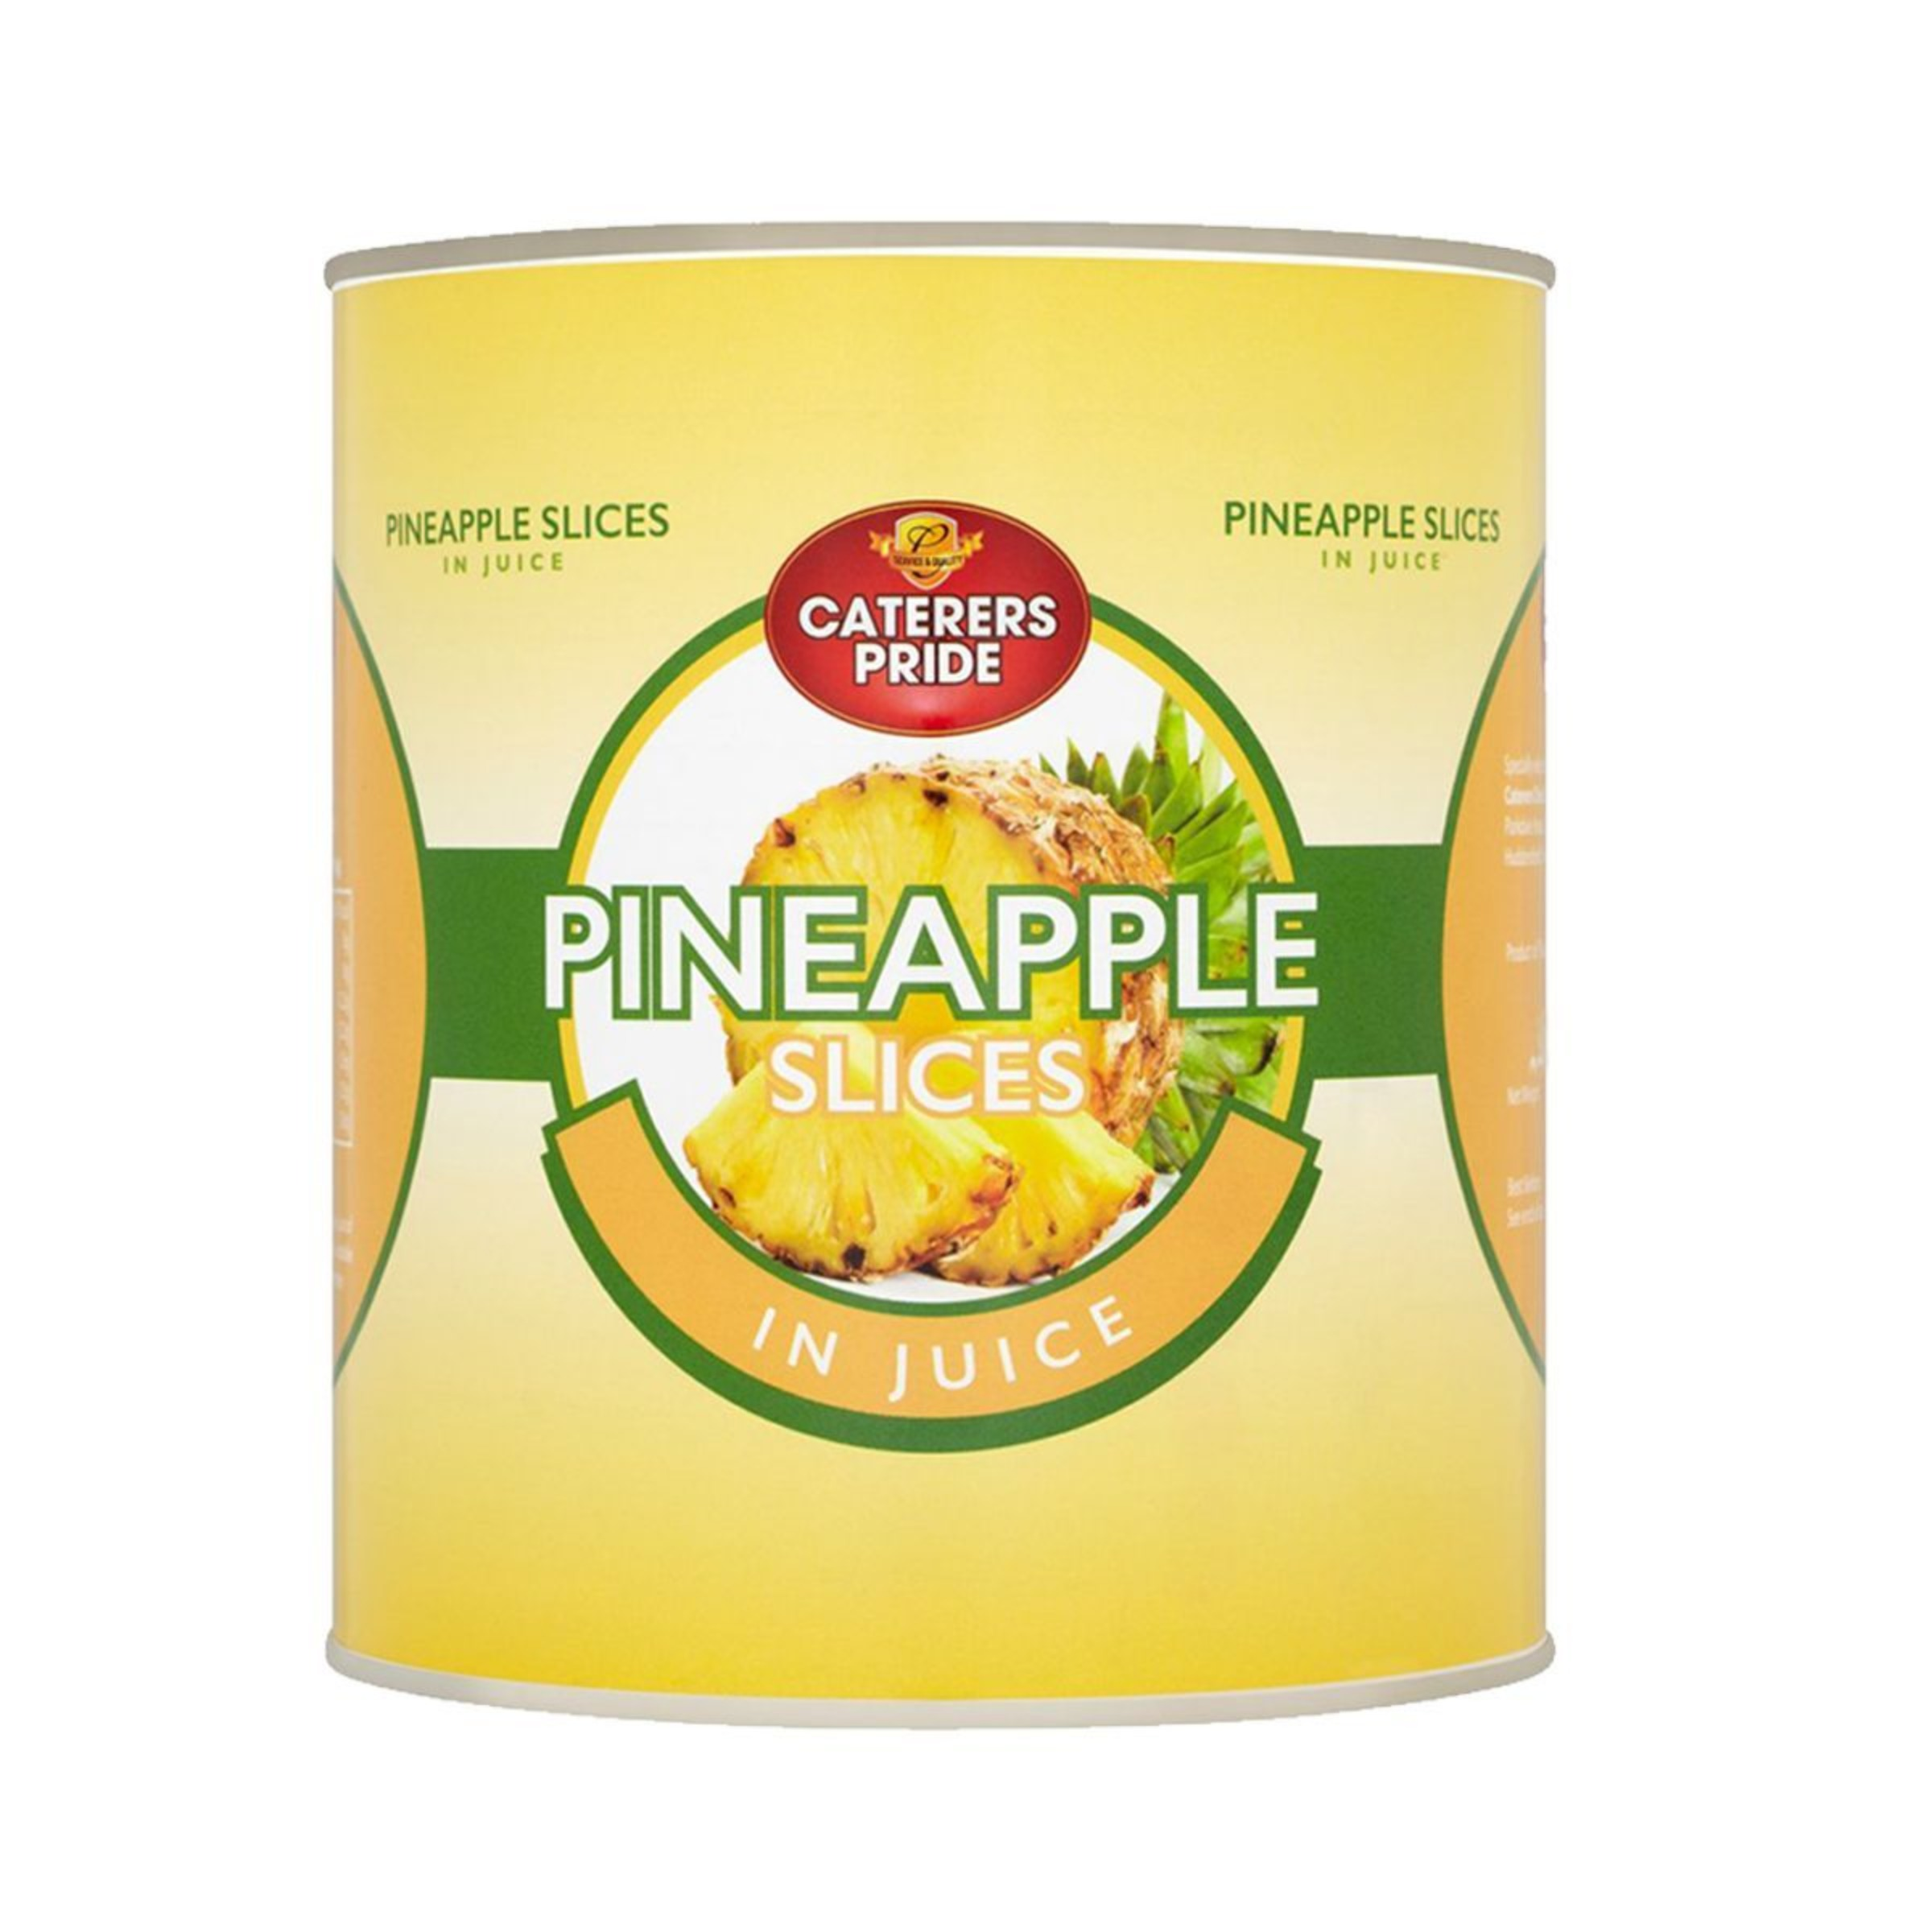 Pineapple Slices in Juice 1x822g